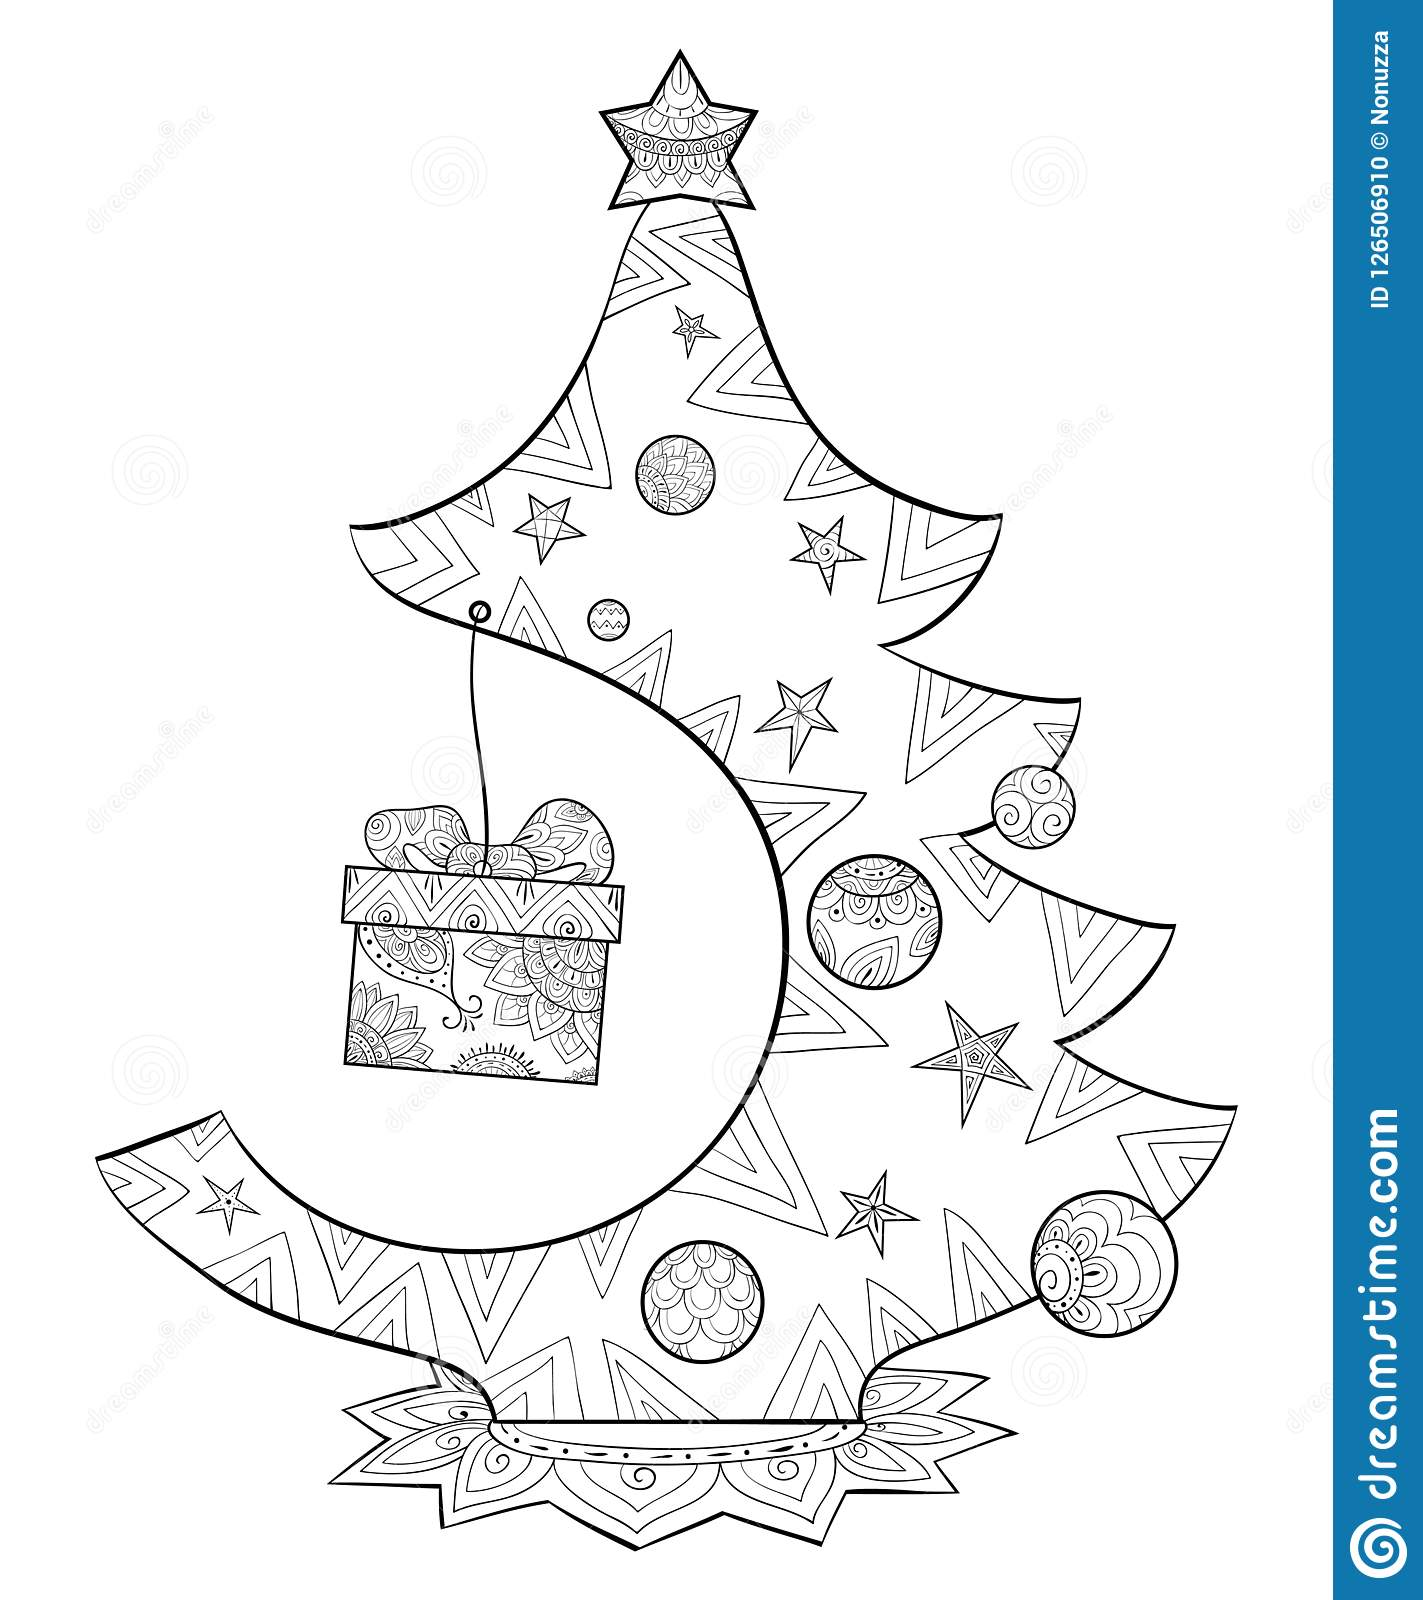 A Coloring Page,book For Adults And Children,a Cute Christmas Fir ...